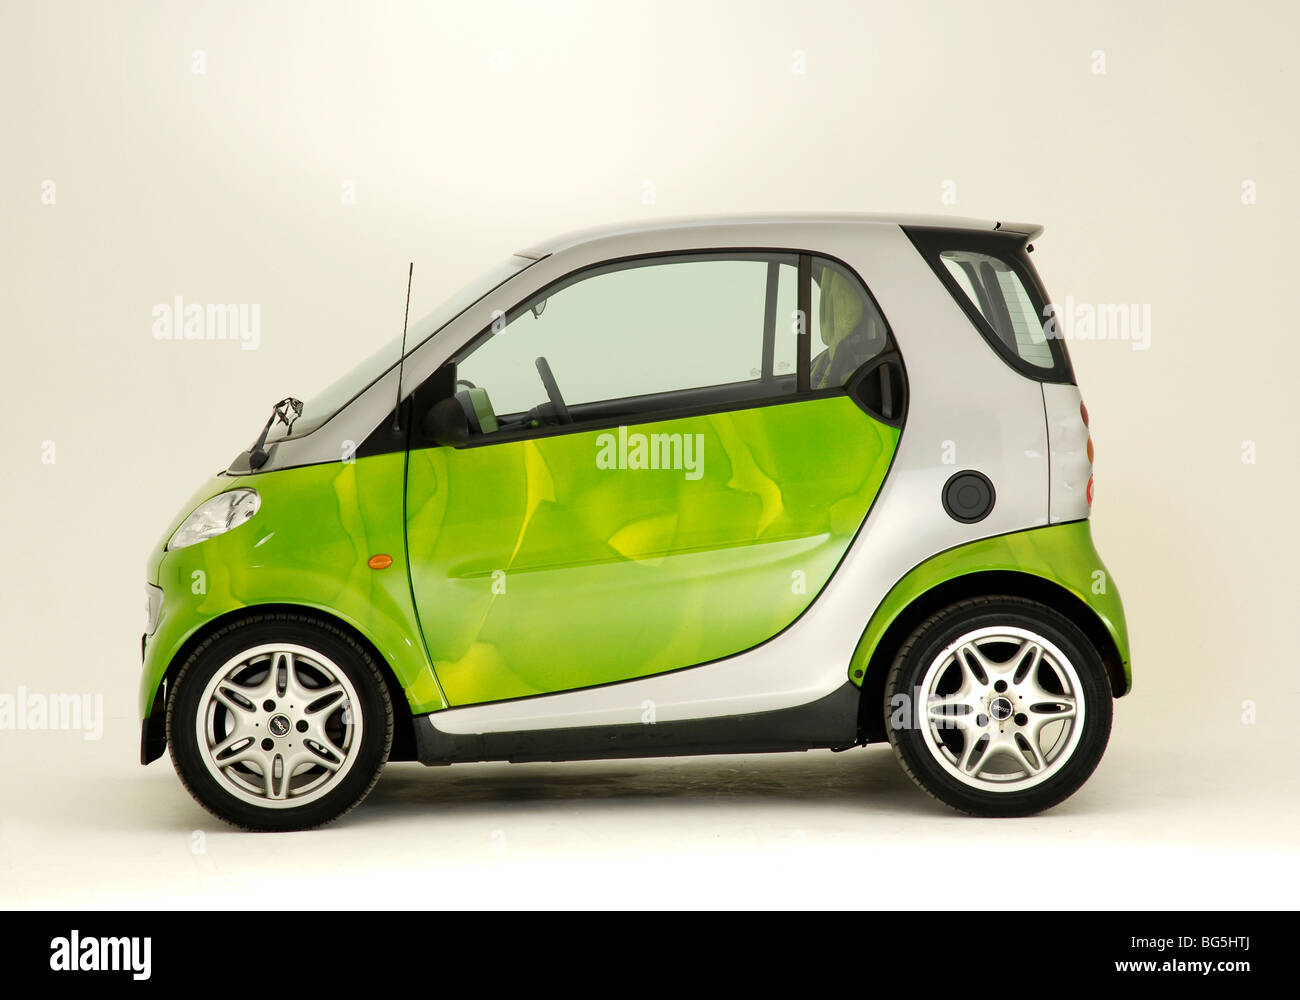 2001 Smart car mk1 Photo Stock